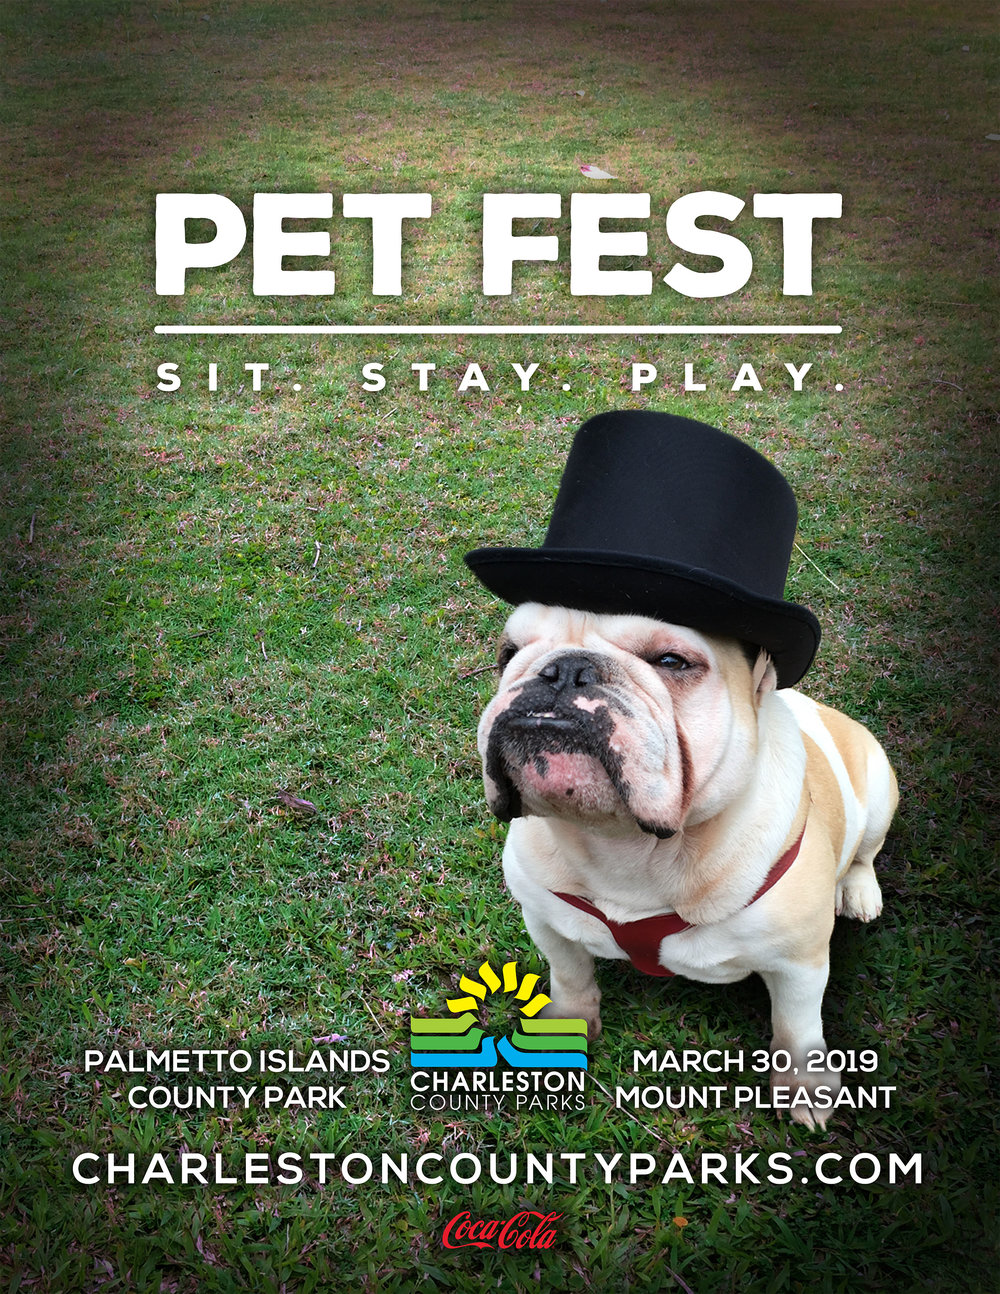 Don't miss Pet Fest, March 30th at Palmetto Islands County Park